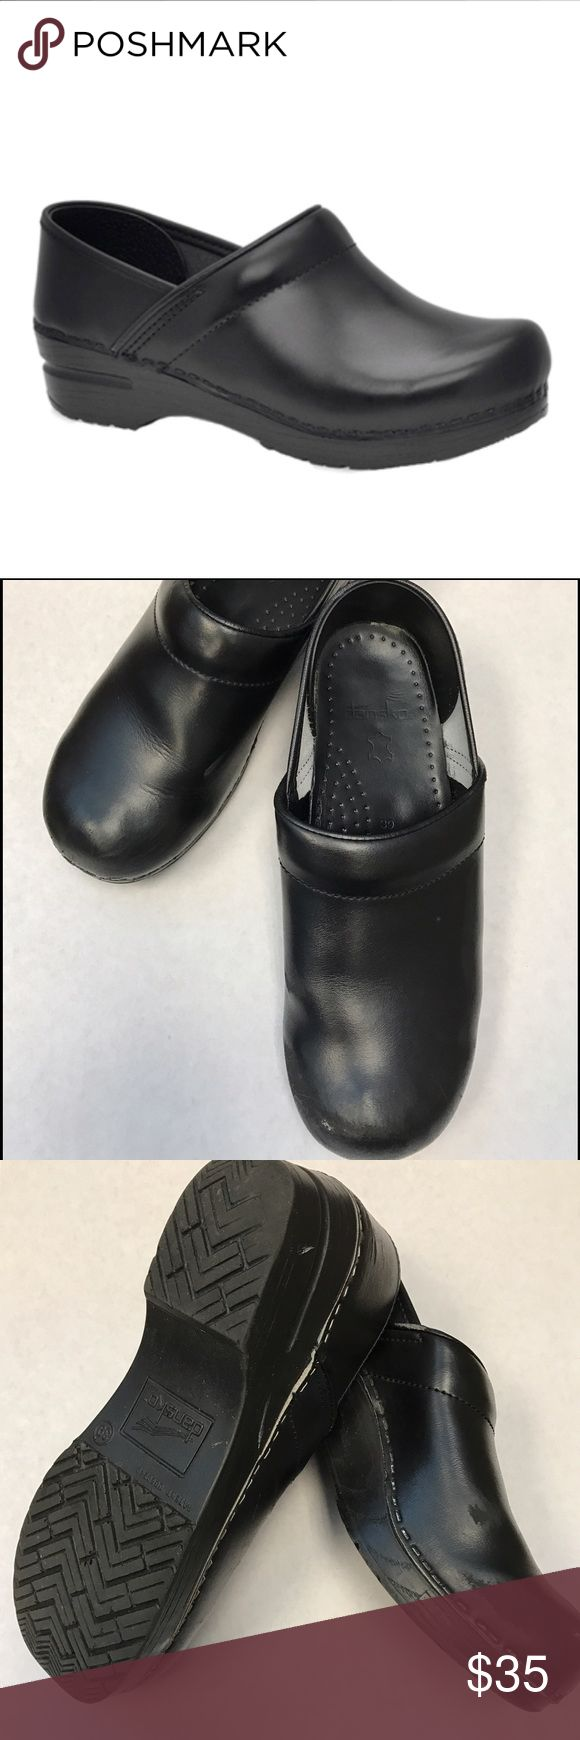 Dansko Professional Clogs Size 39/9 Womens // Very comfy // Scratches on toes (see pics) Dansko Shoes Mules & Clogs